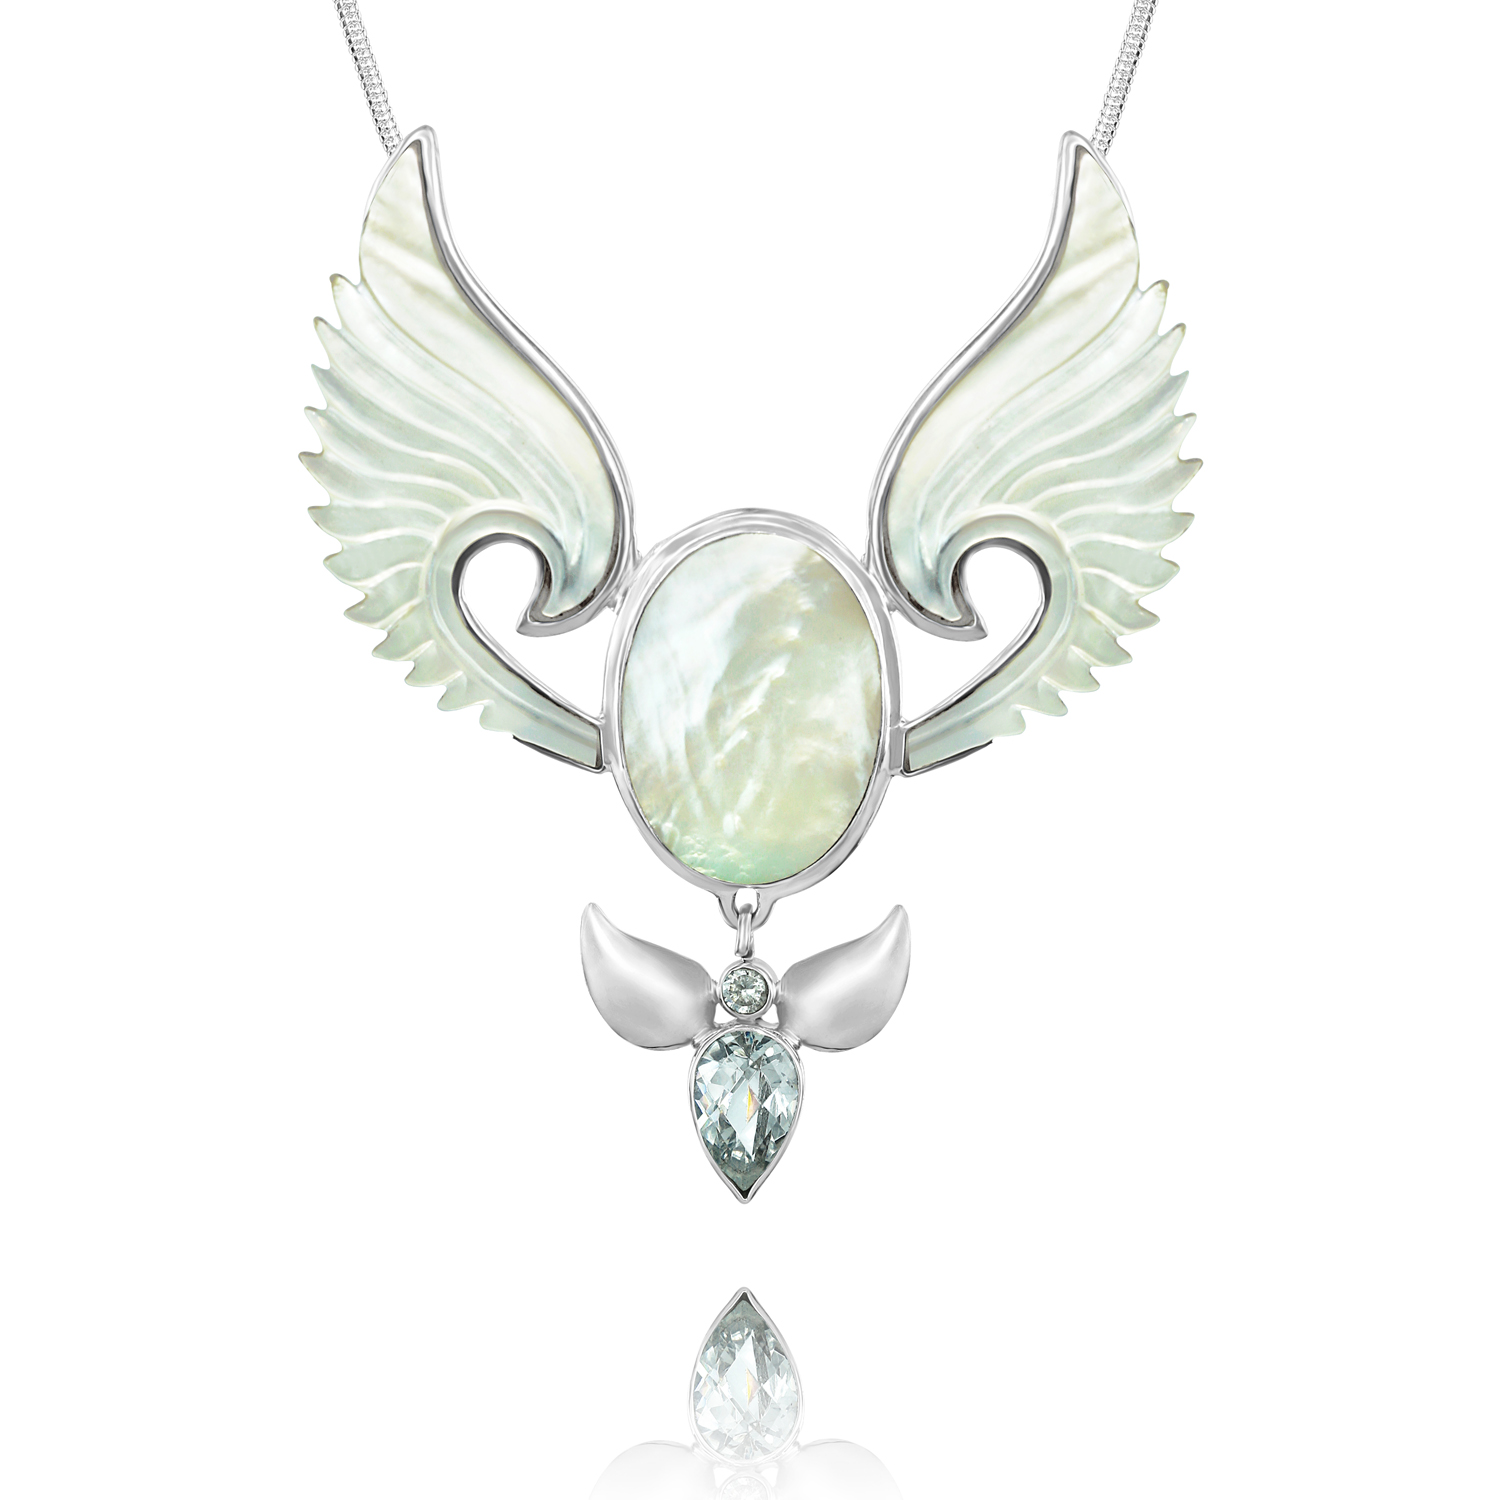 Divine feminine angel necklace angel pendant by angel jewelry 11 fascinating facts about angels aloadofball Gallery